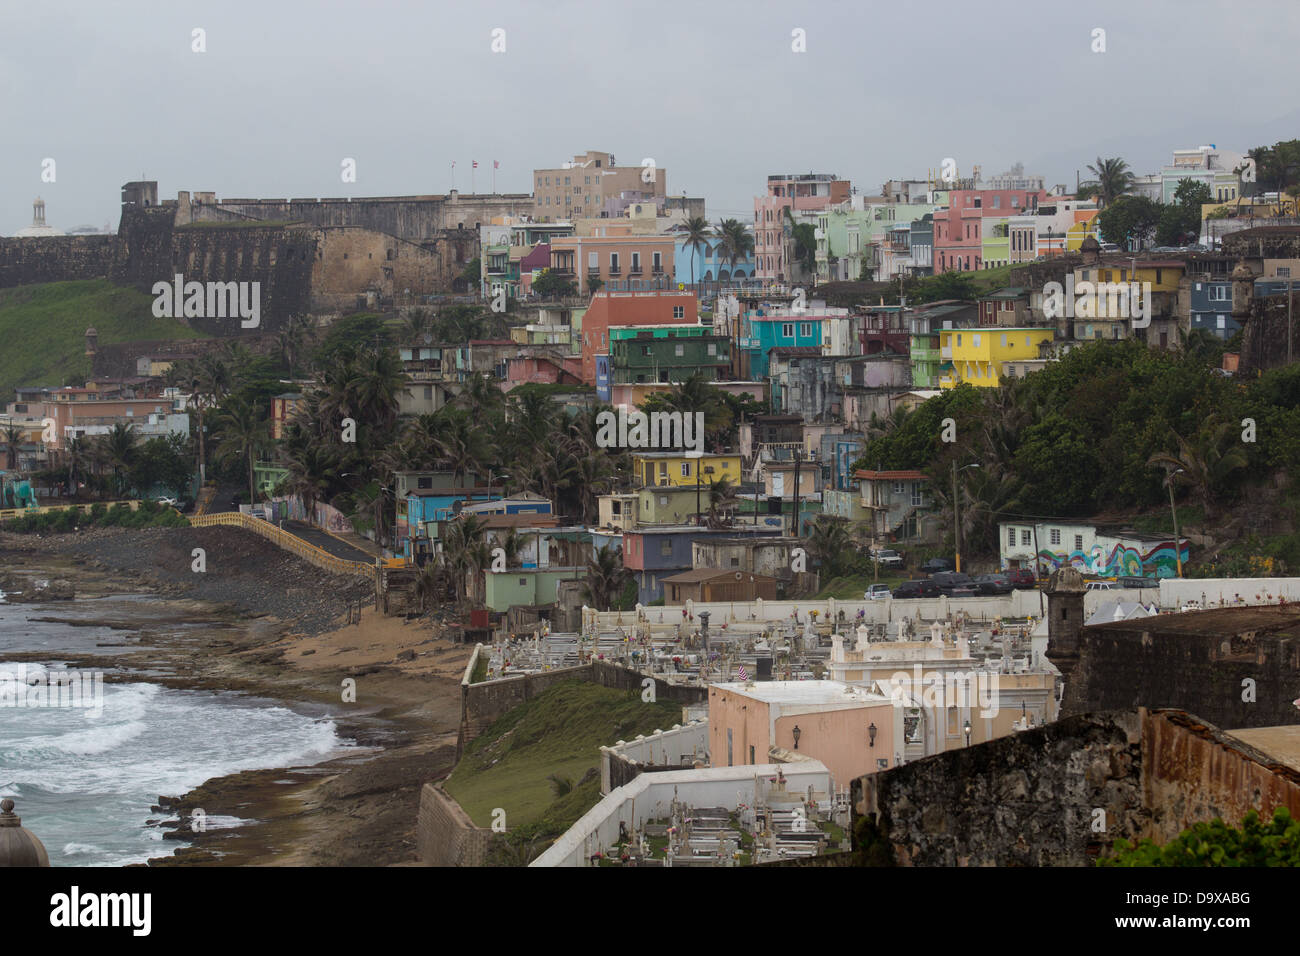 Colorful buildings on a hill Stock Photo